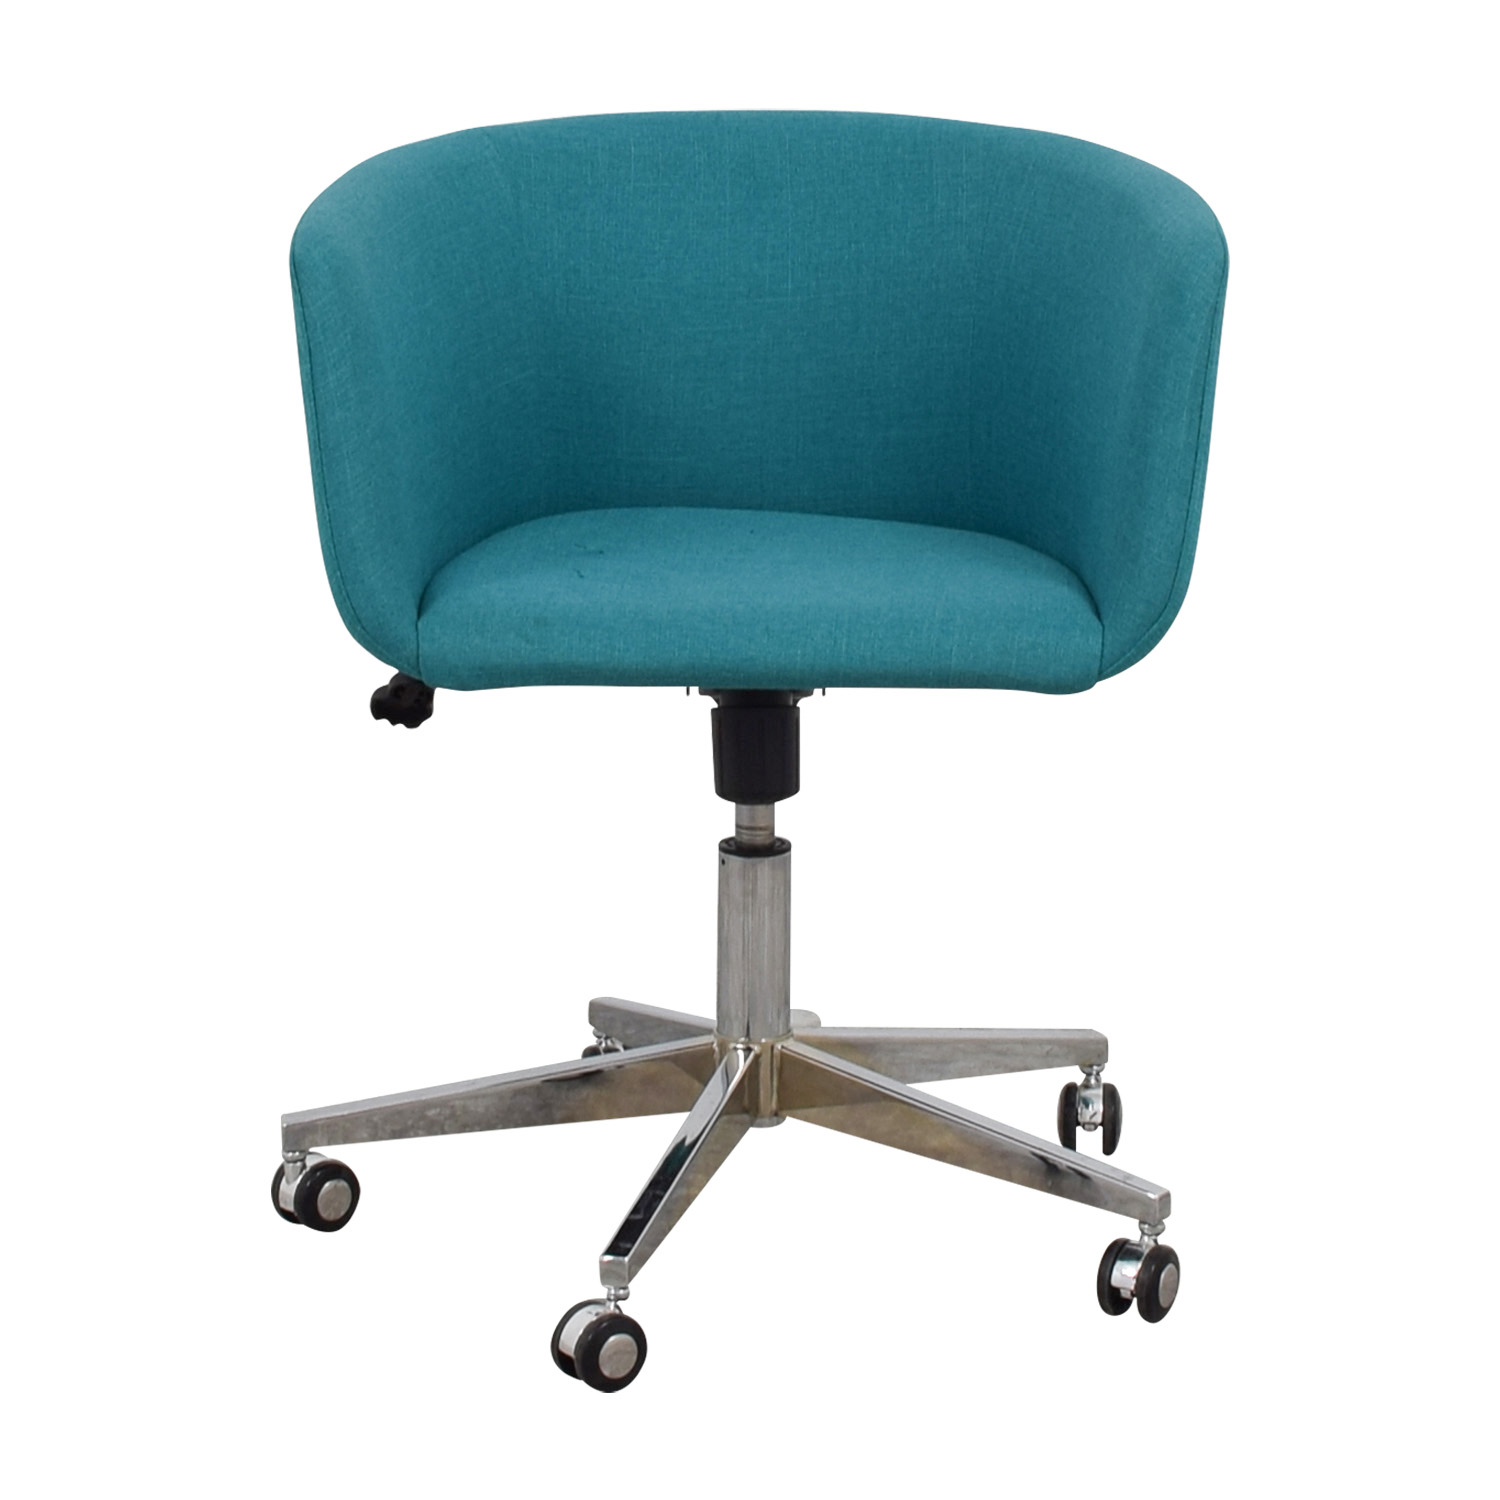 CB2 CB2 Teal Desk Chair with Castors on sale